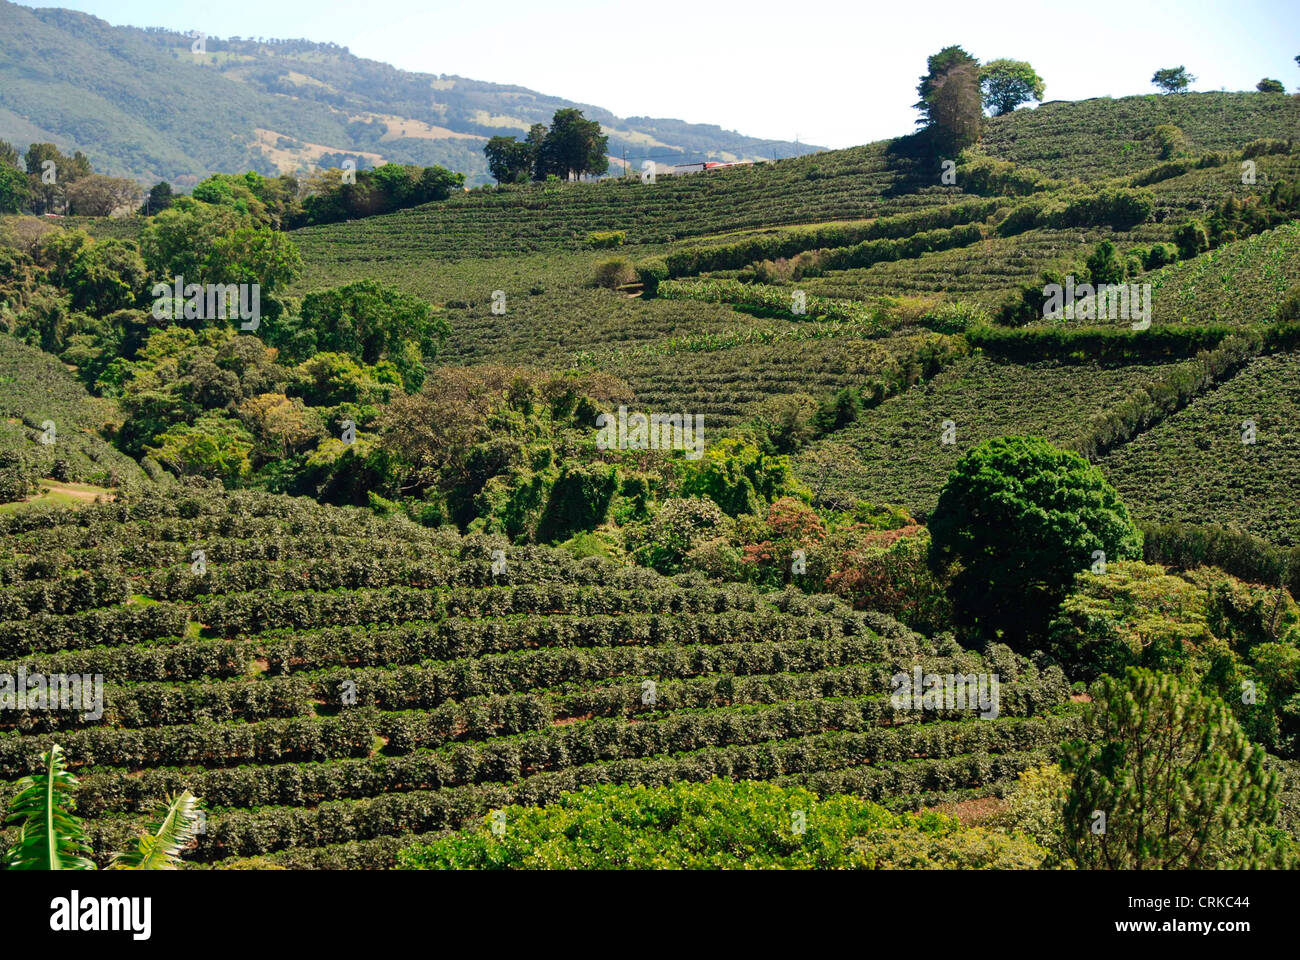 Costa Coffee Arabica Robusta Arabica Coffee Beans Plantation Near Poas Volcano Central